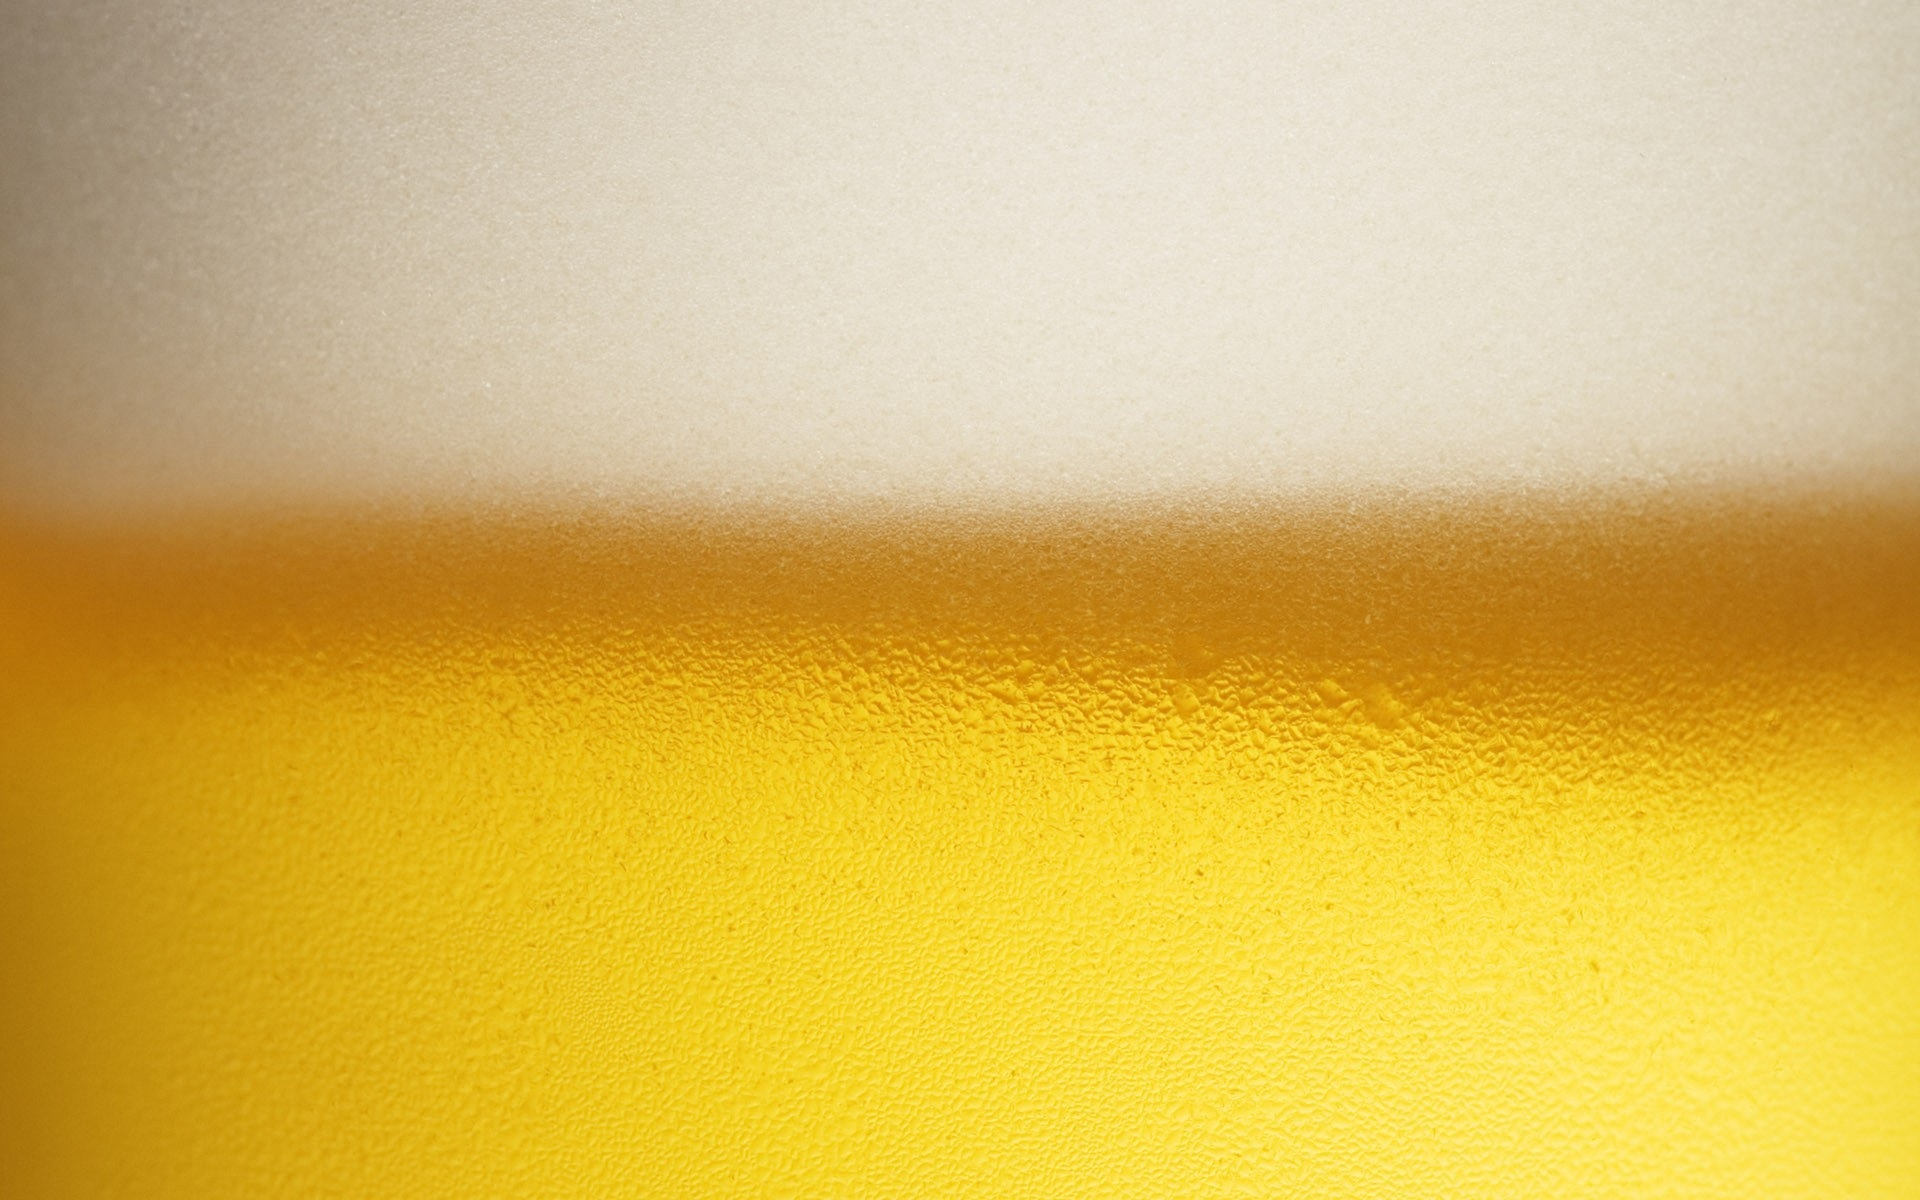 Пиво, texture, background, photo, beer background texture